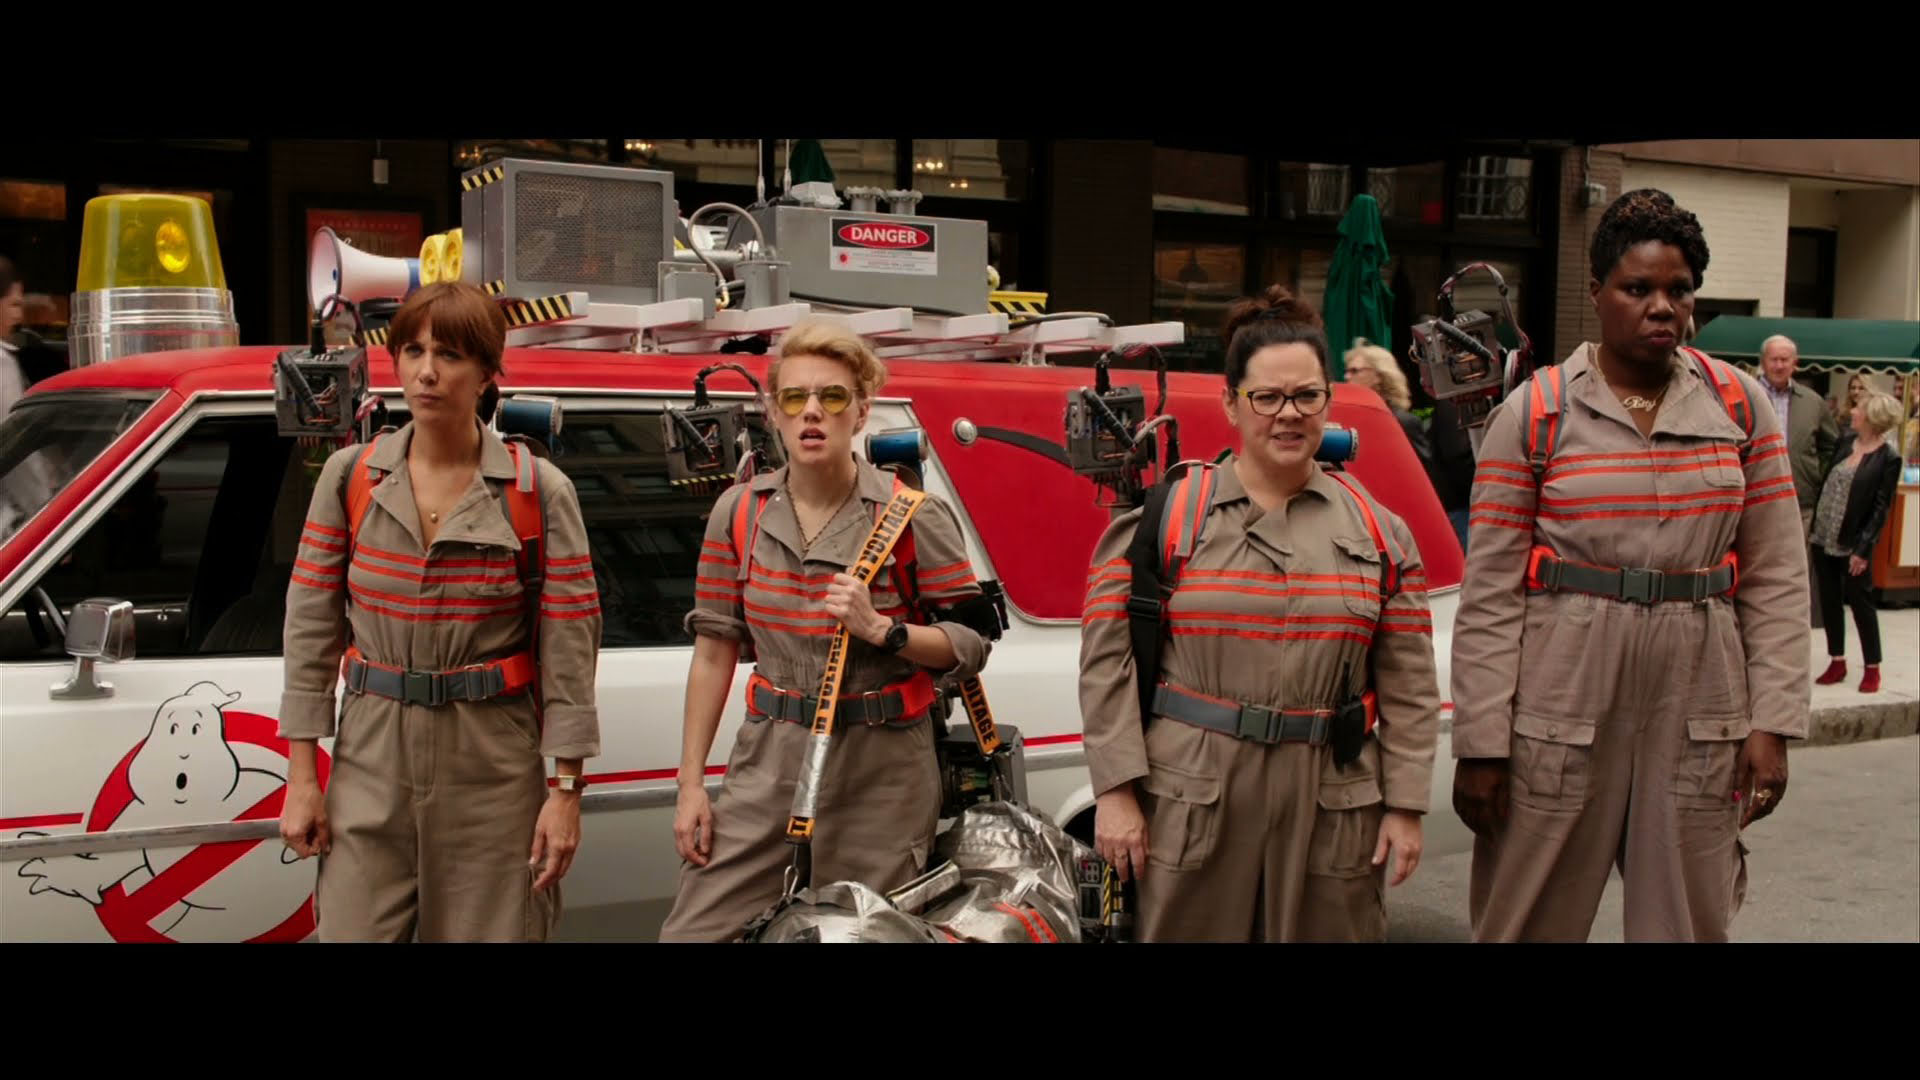 New Ghostbusters cast shakes off criticism to revive classic story